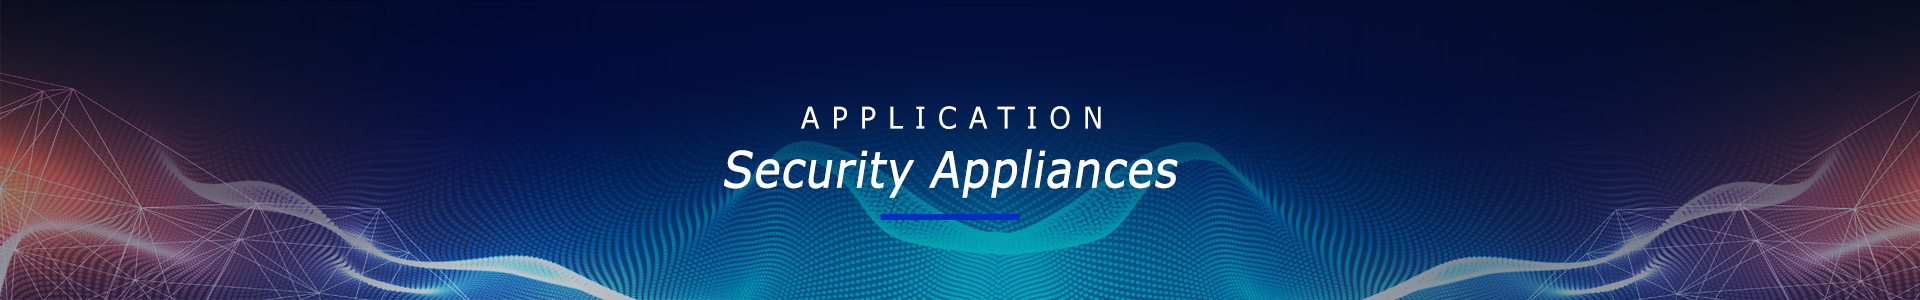 Application of new product protection in security electronics - Security Appliances